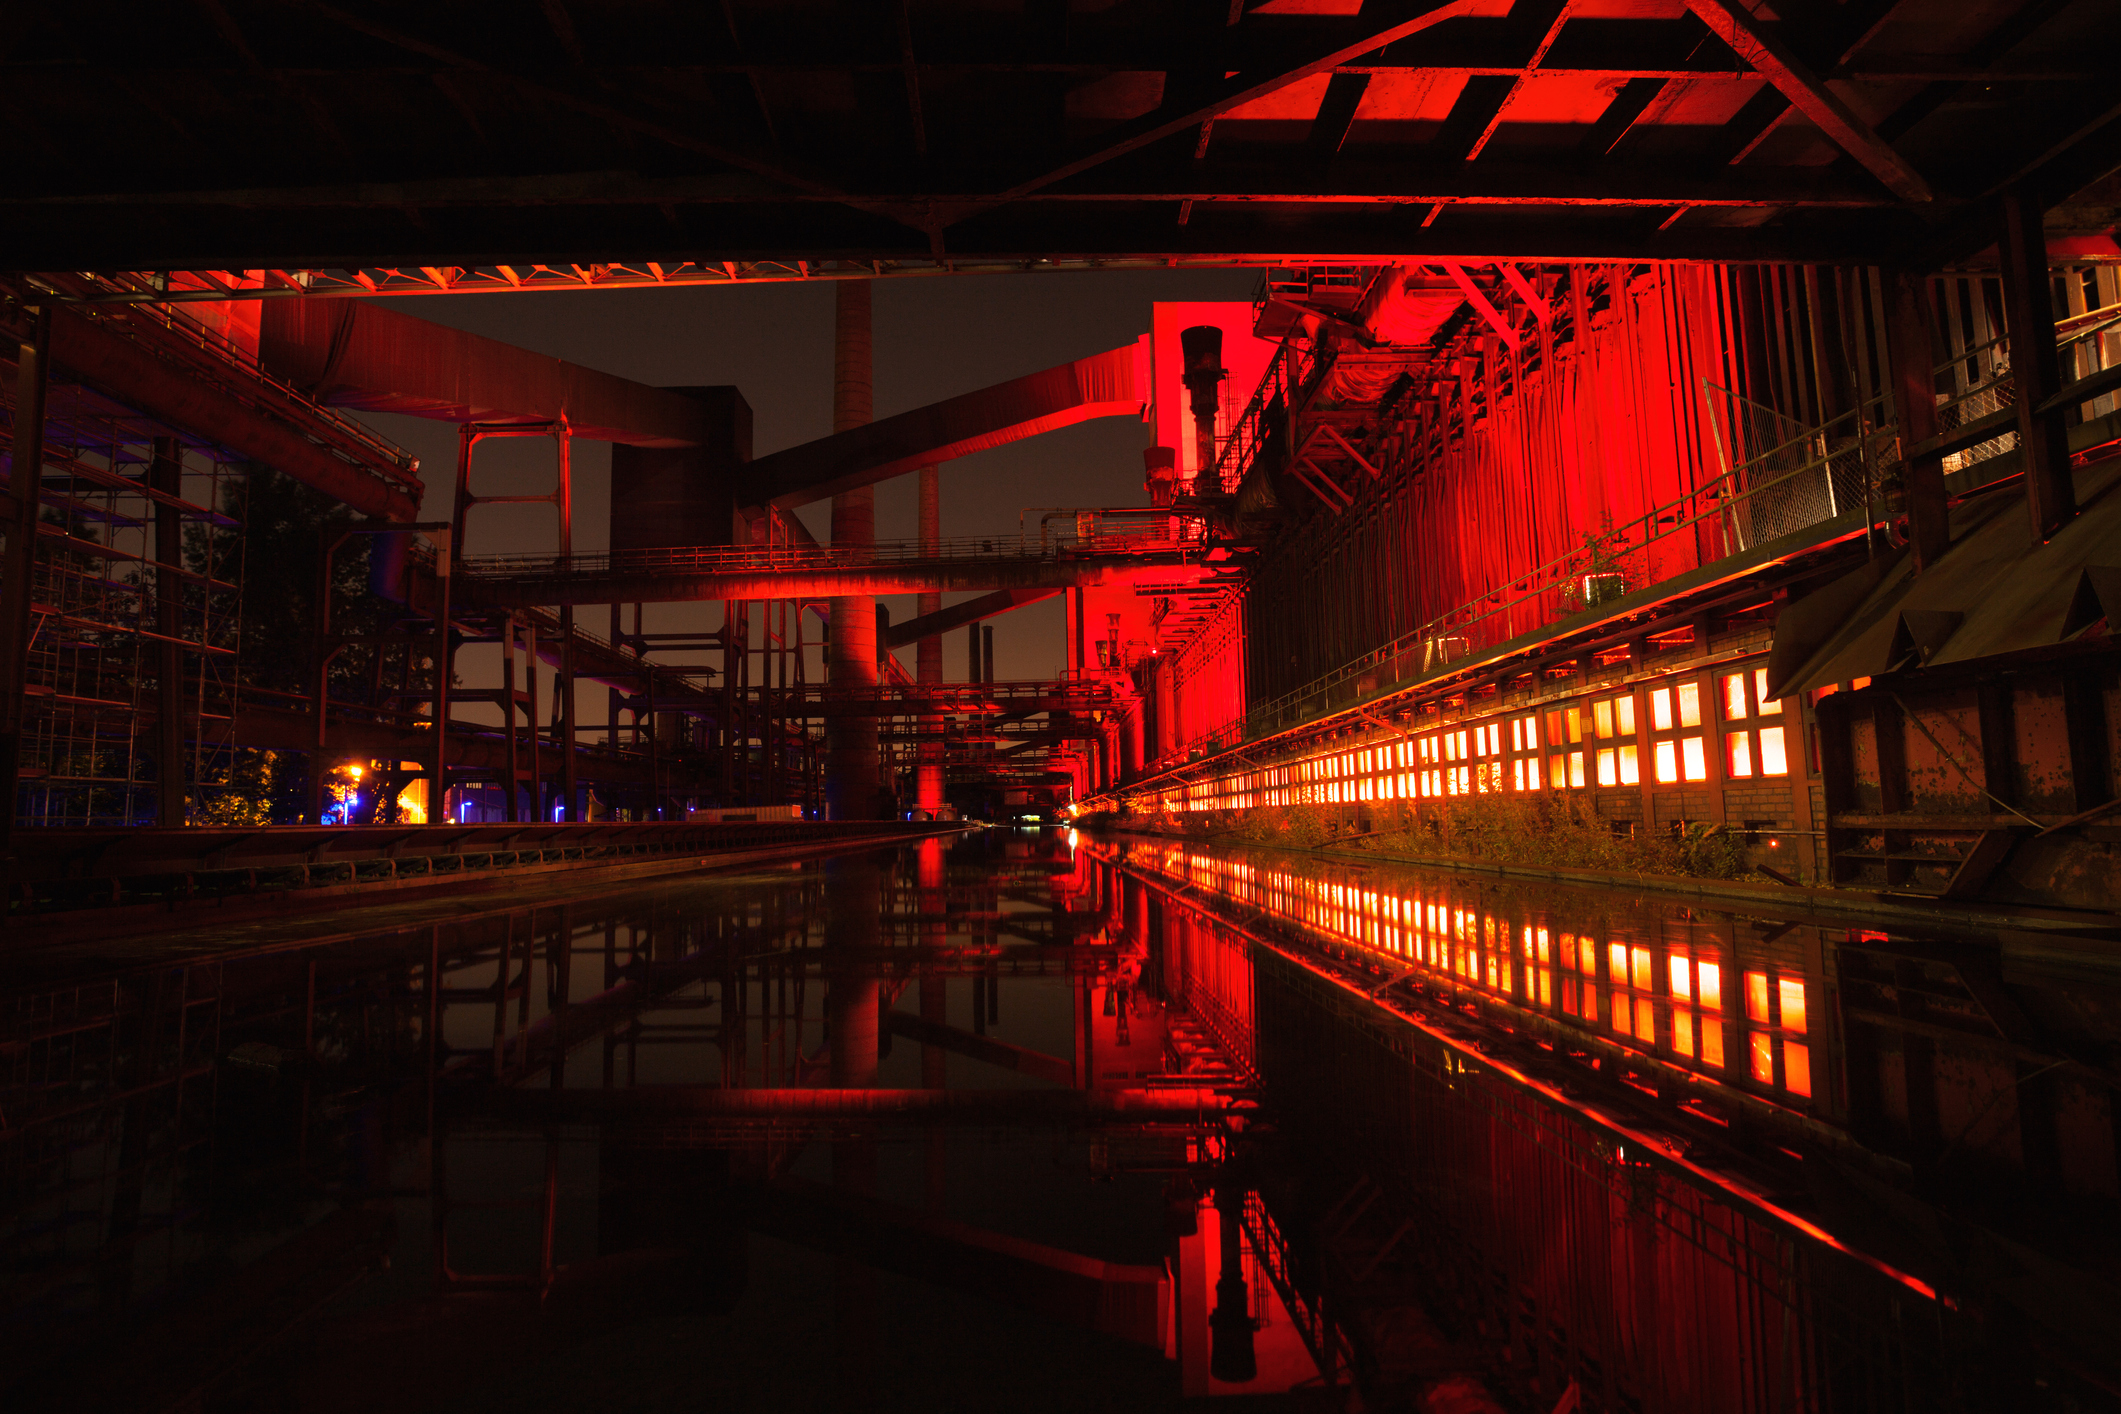 Coke oven Zollverein at night. Complex is illuminated and appears in red colors.